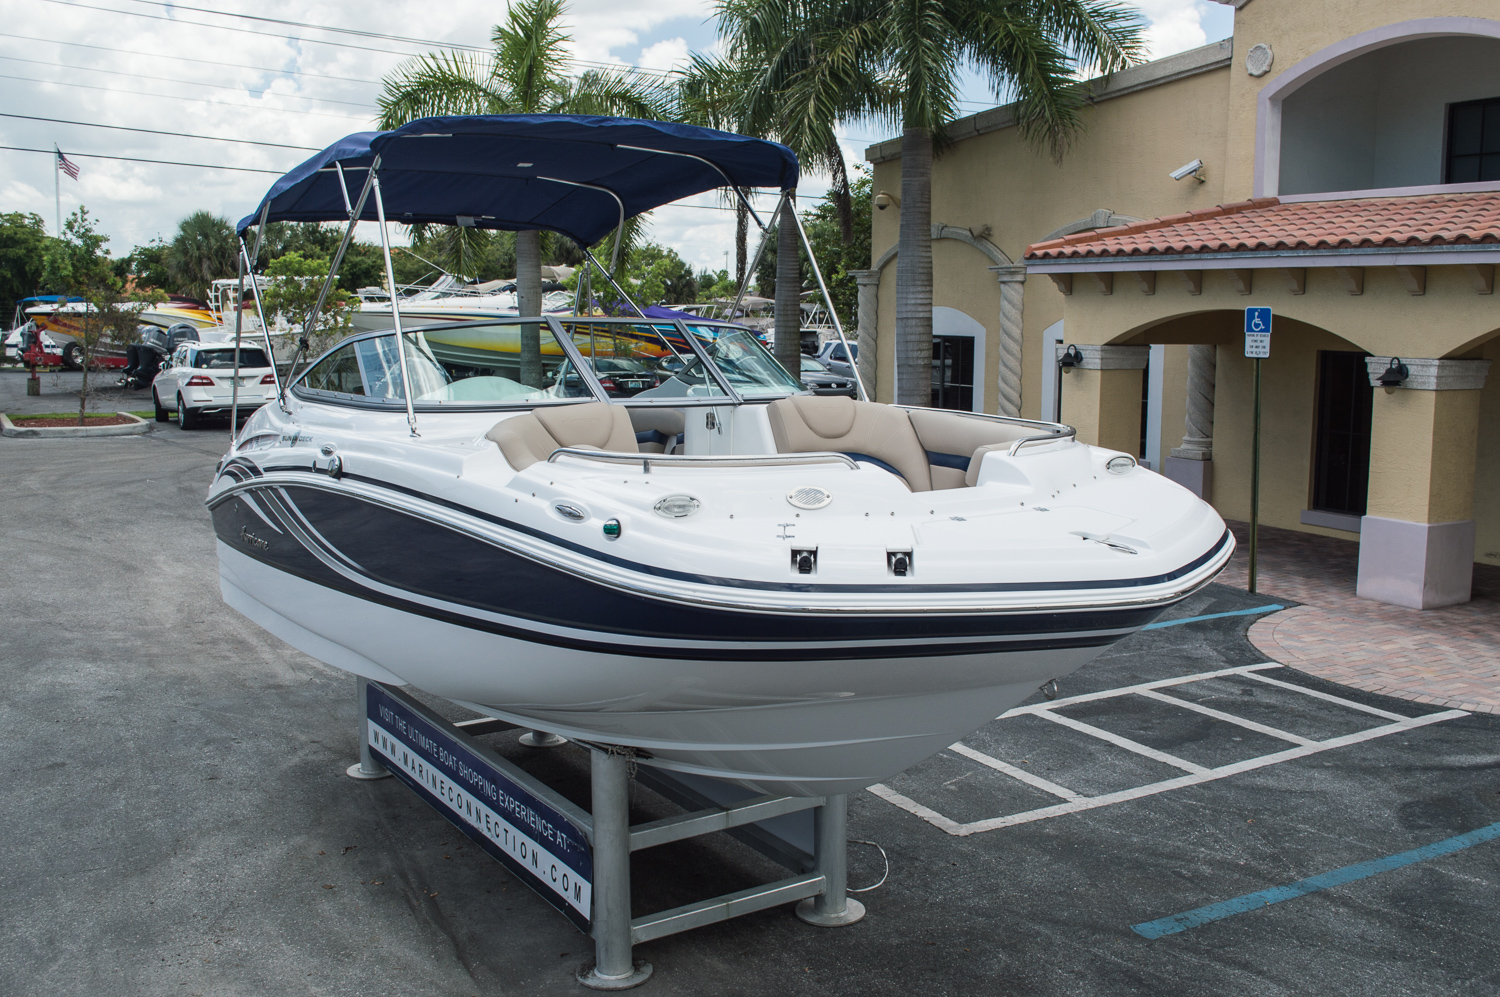 New 2014 hurricane sundeck sd 2000 ob boat for sale in for Hurricane sundeck for sale